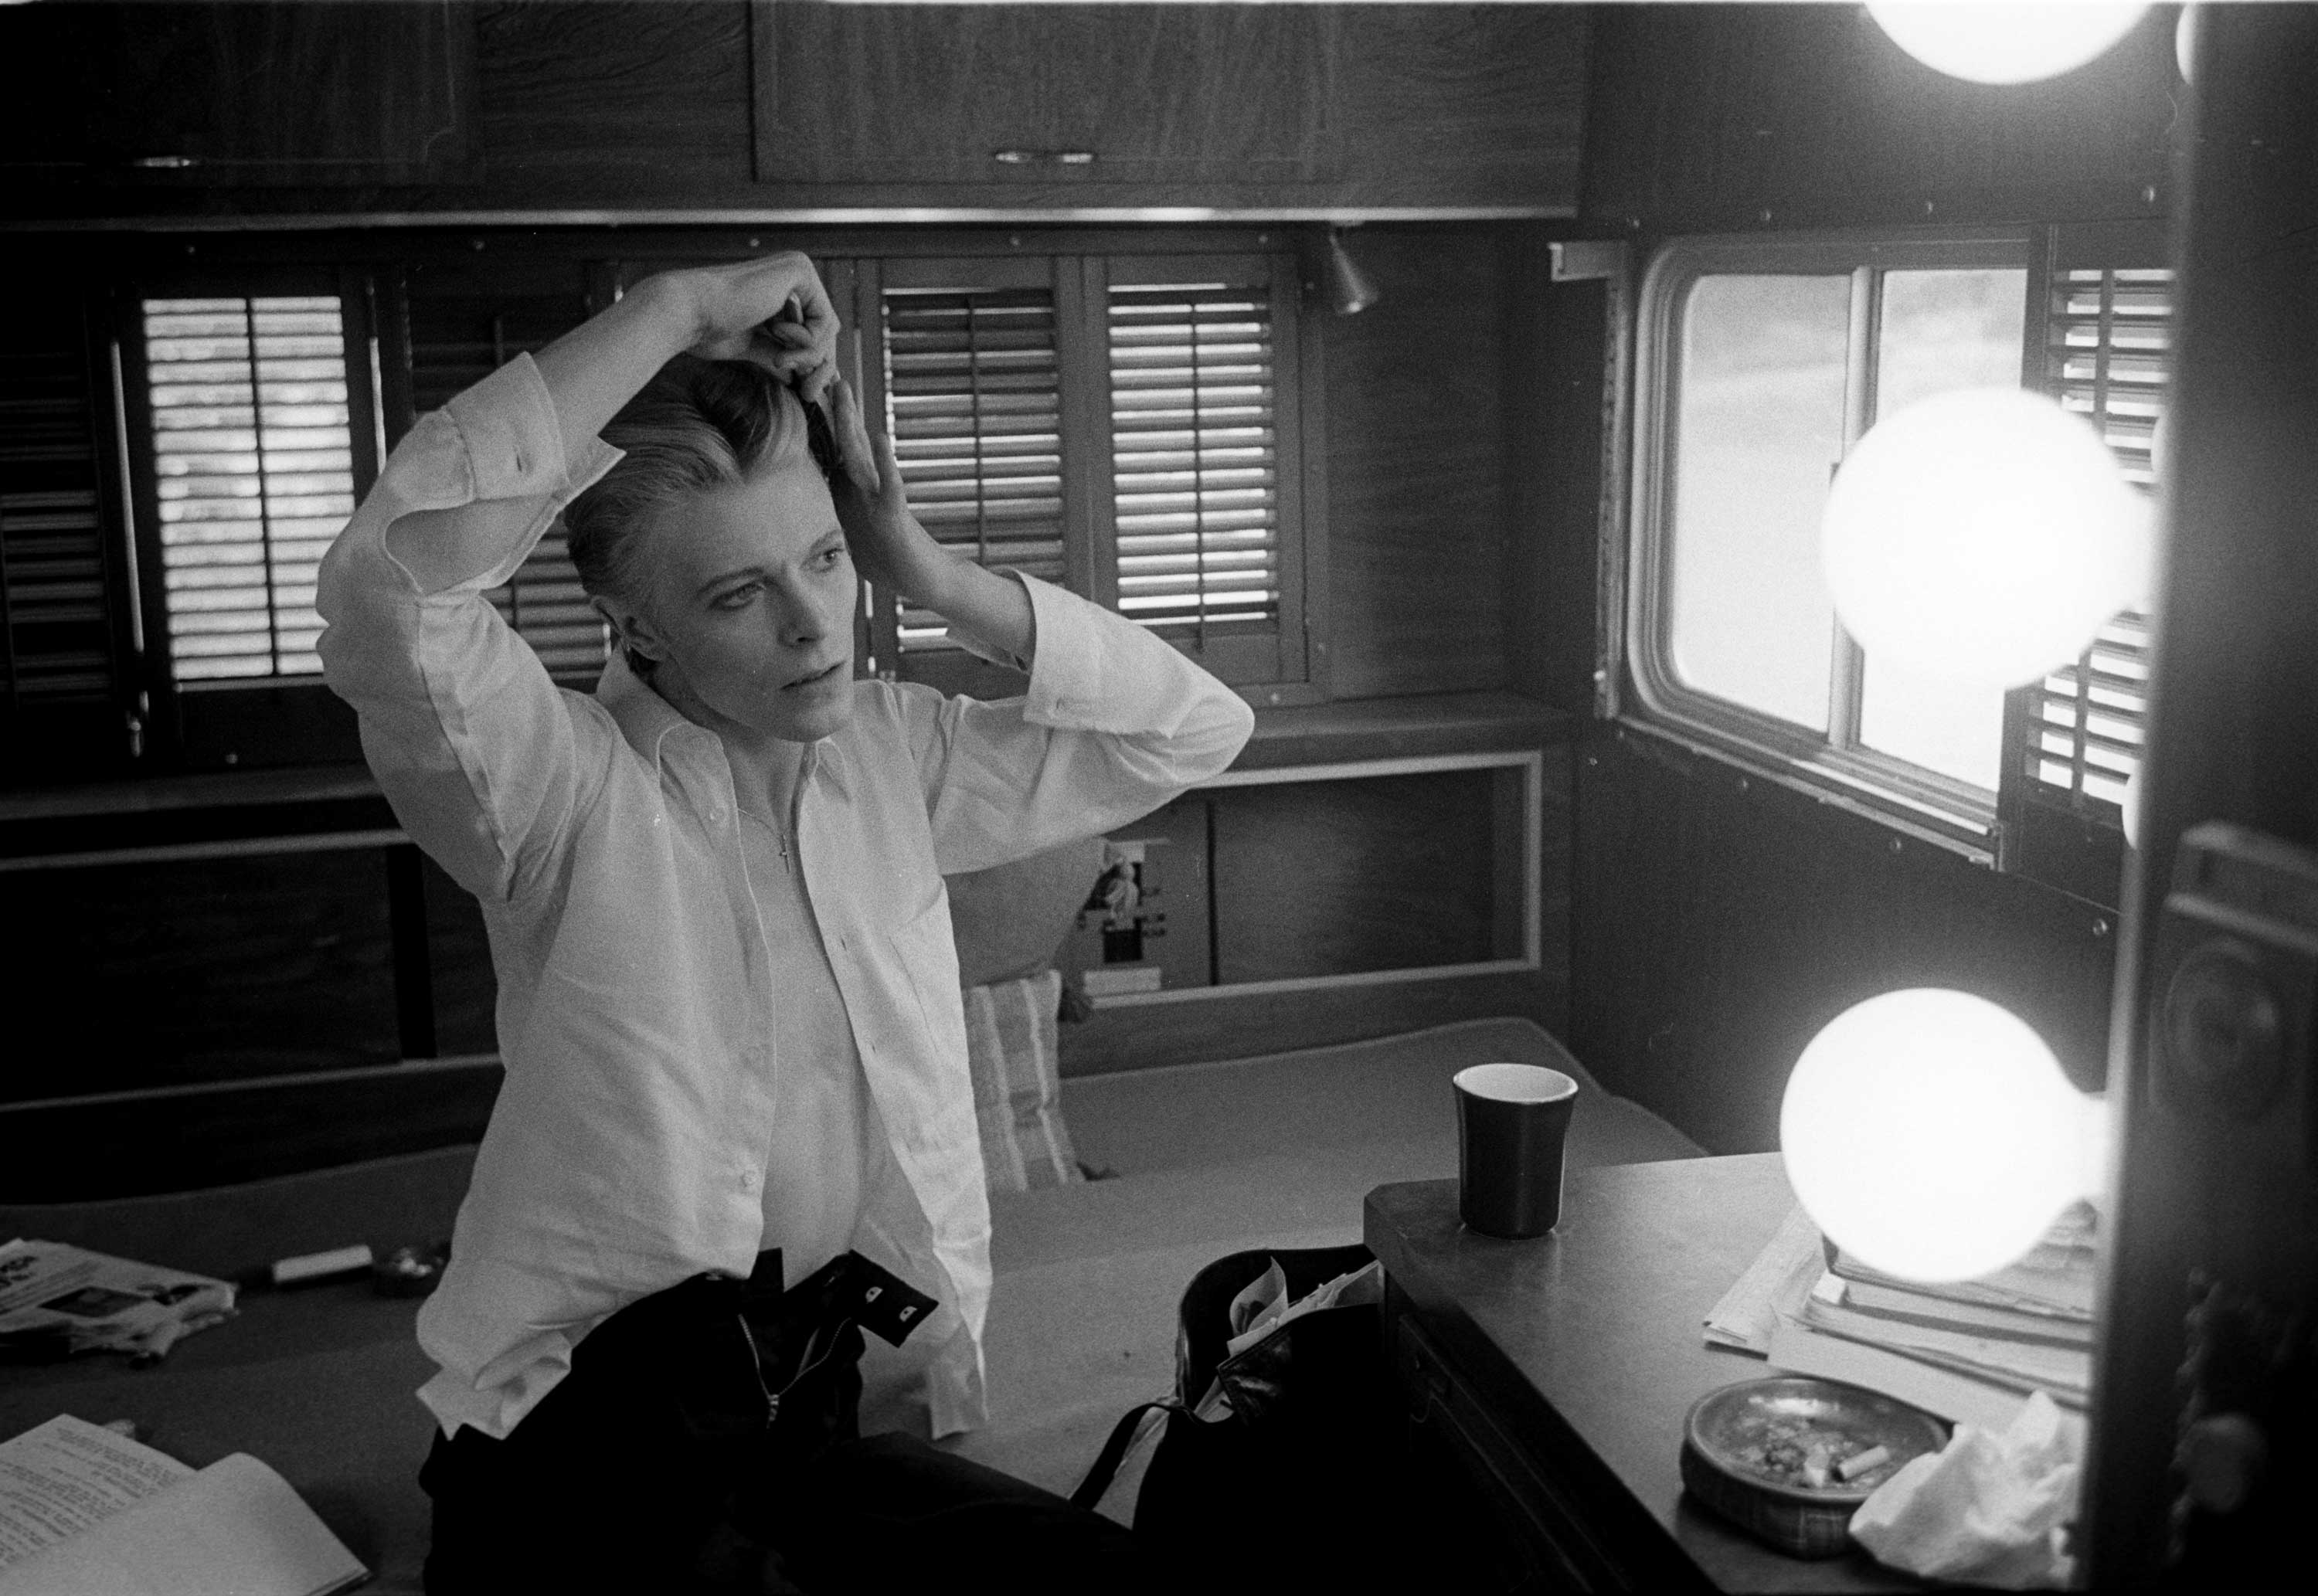 Steve Schapiro: Bowie in his dressing room  trailer, combing his hair, on the set of The Man Who Fell to Earth, New Mexico, 1975.